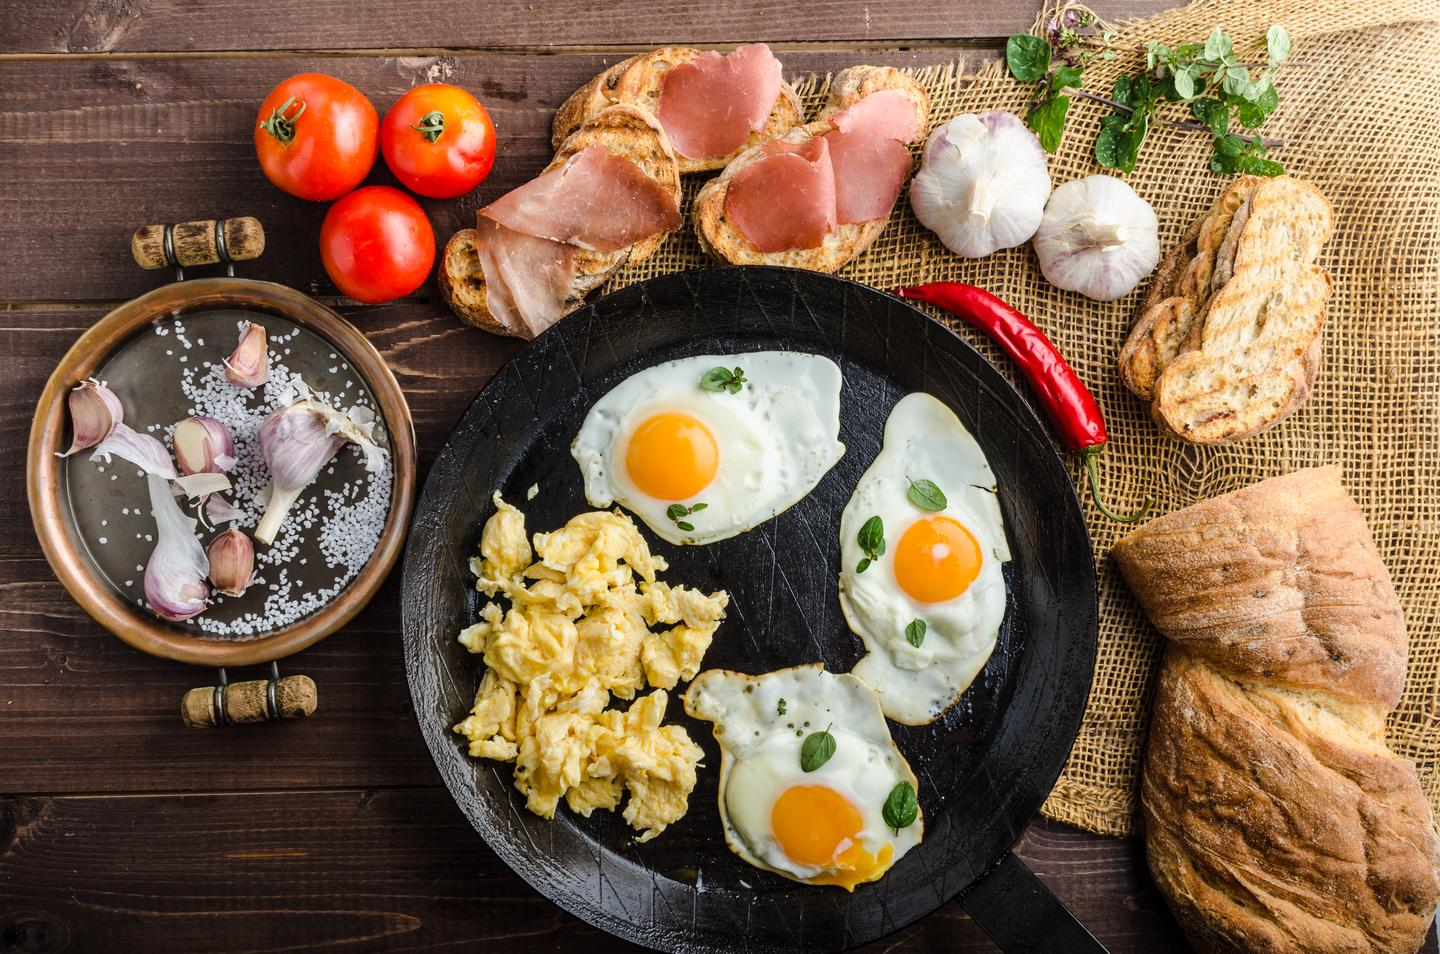 New research indicates that for optimal muscle growth protein should be primarily consumed early in the day